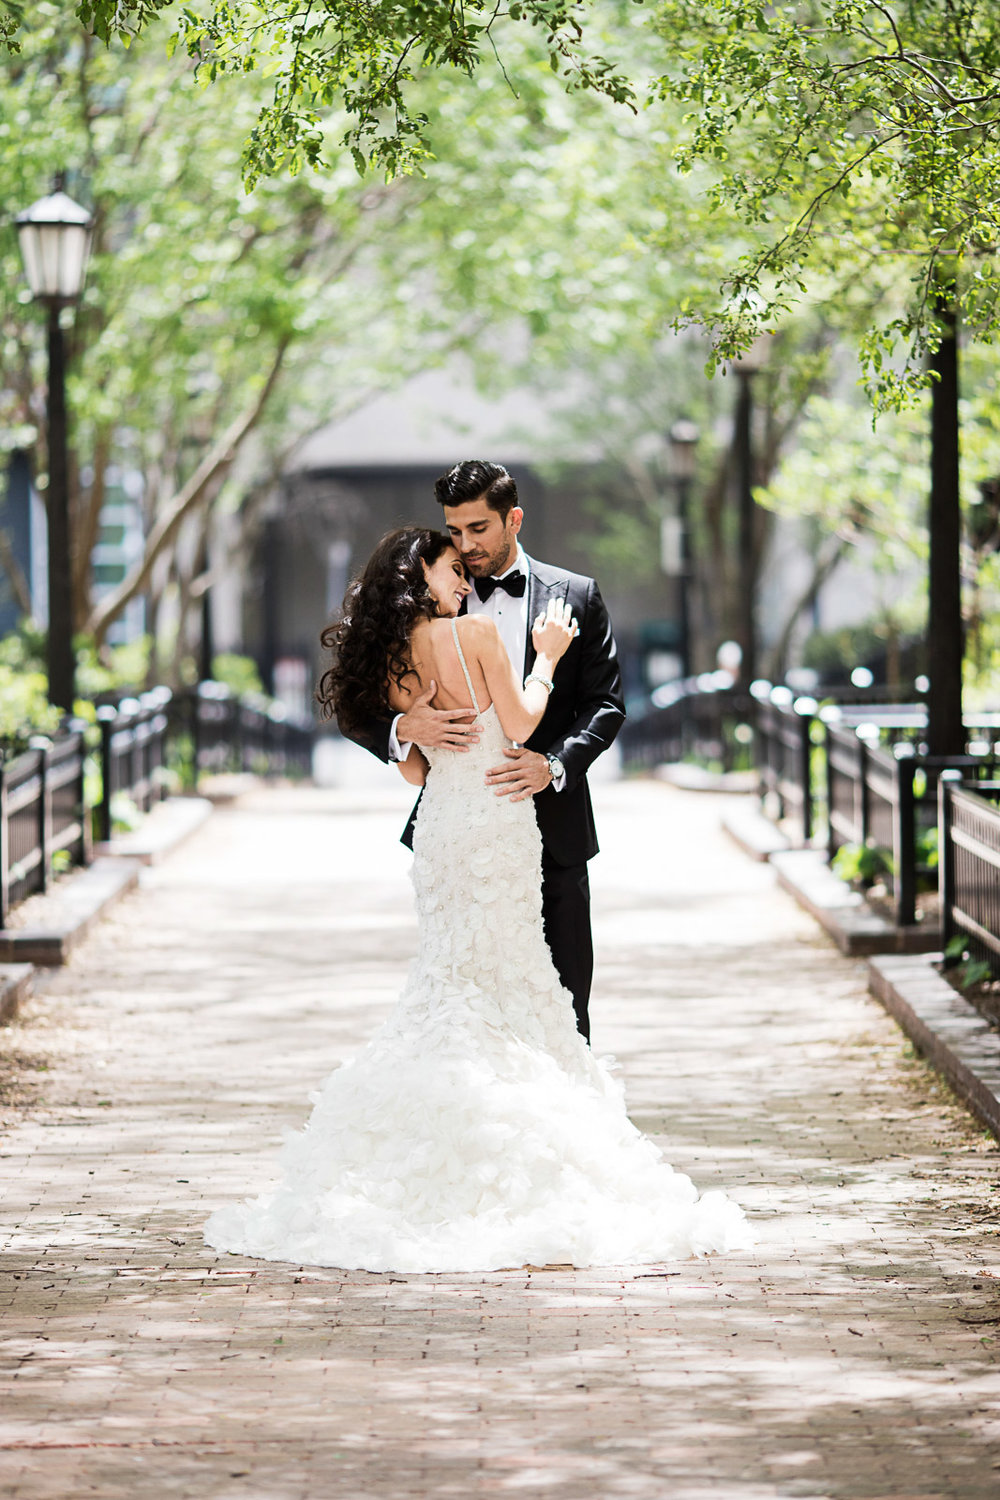 This photograph may look like a perfectly posed portrait but it happened purely organically as the bride and groom embraced after seeing each other for the first time on the morning of the wedding.